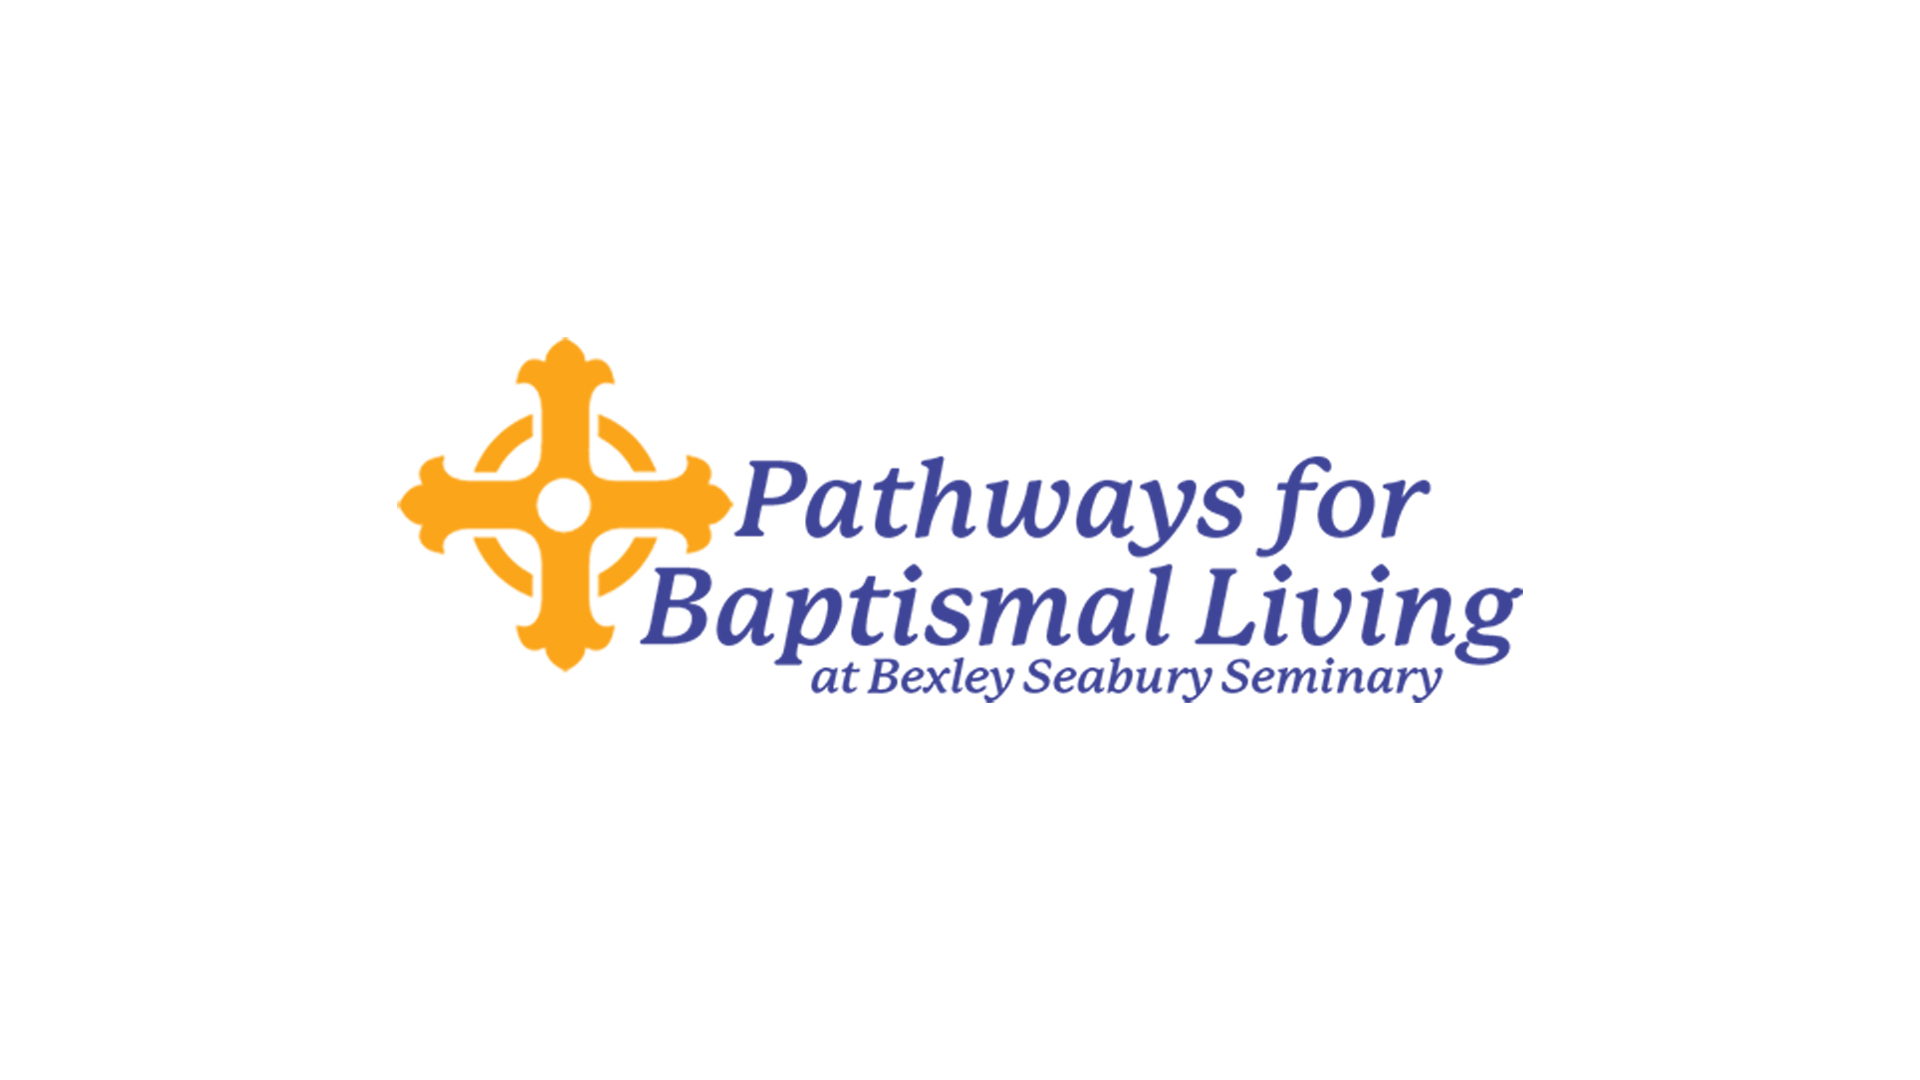 Sharing Stories of Baptismal Living — monthly web conferences from Bexley Seabury Seminary